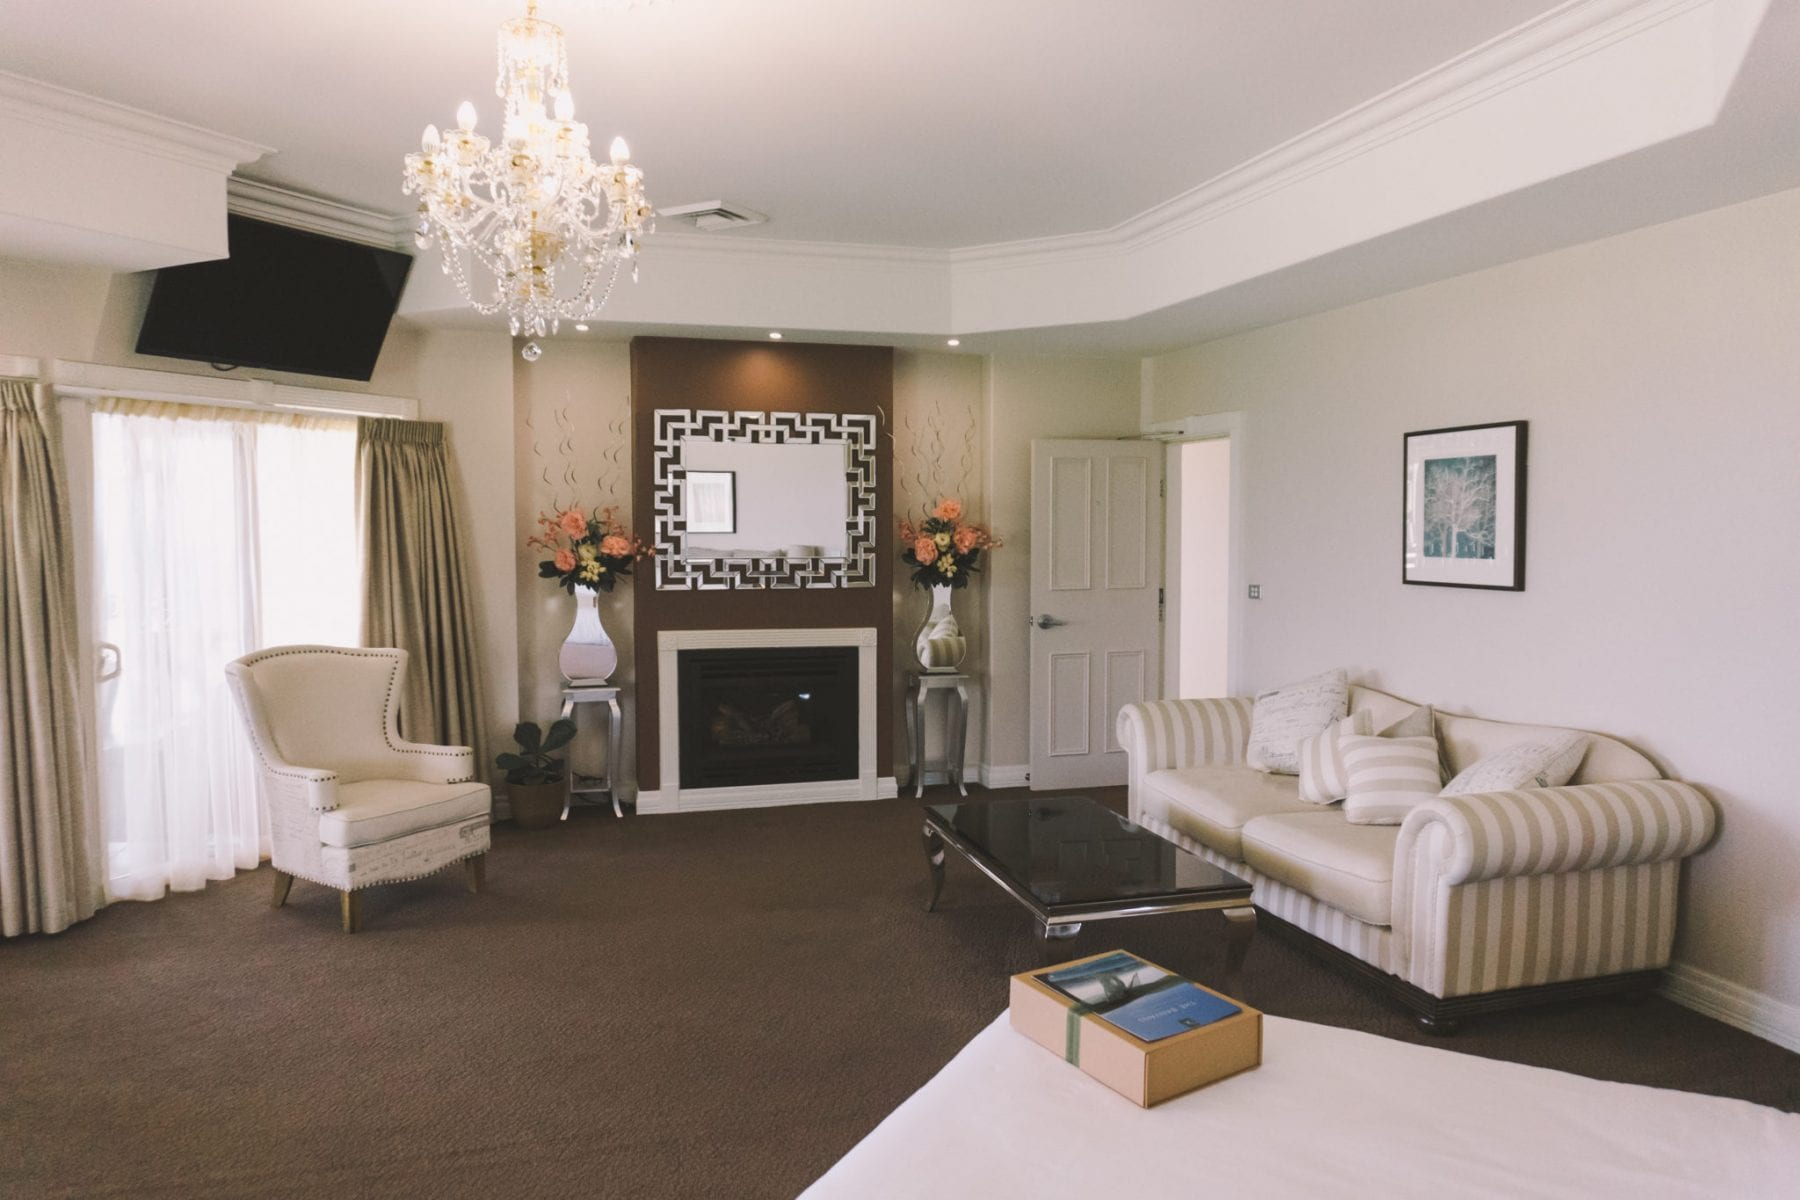 The Grand Banyans Suite